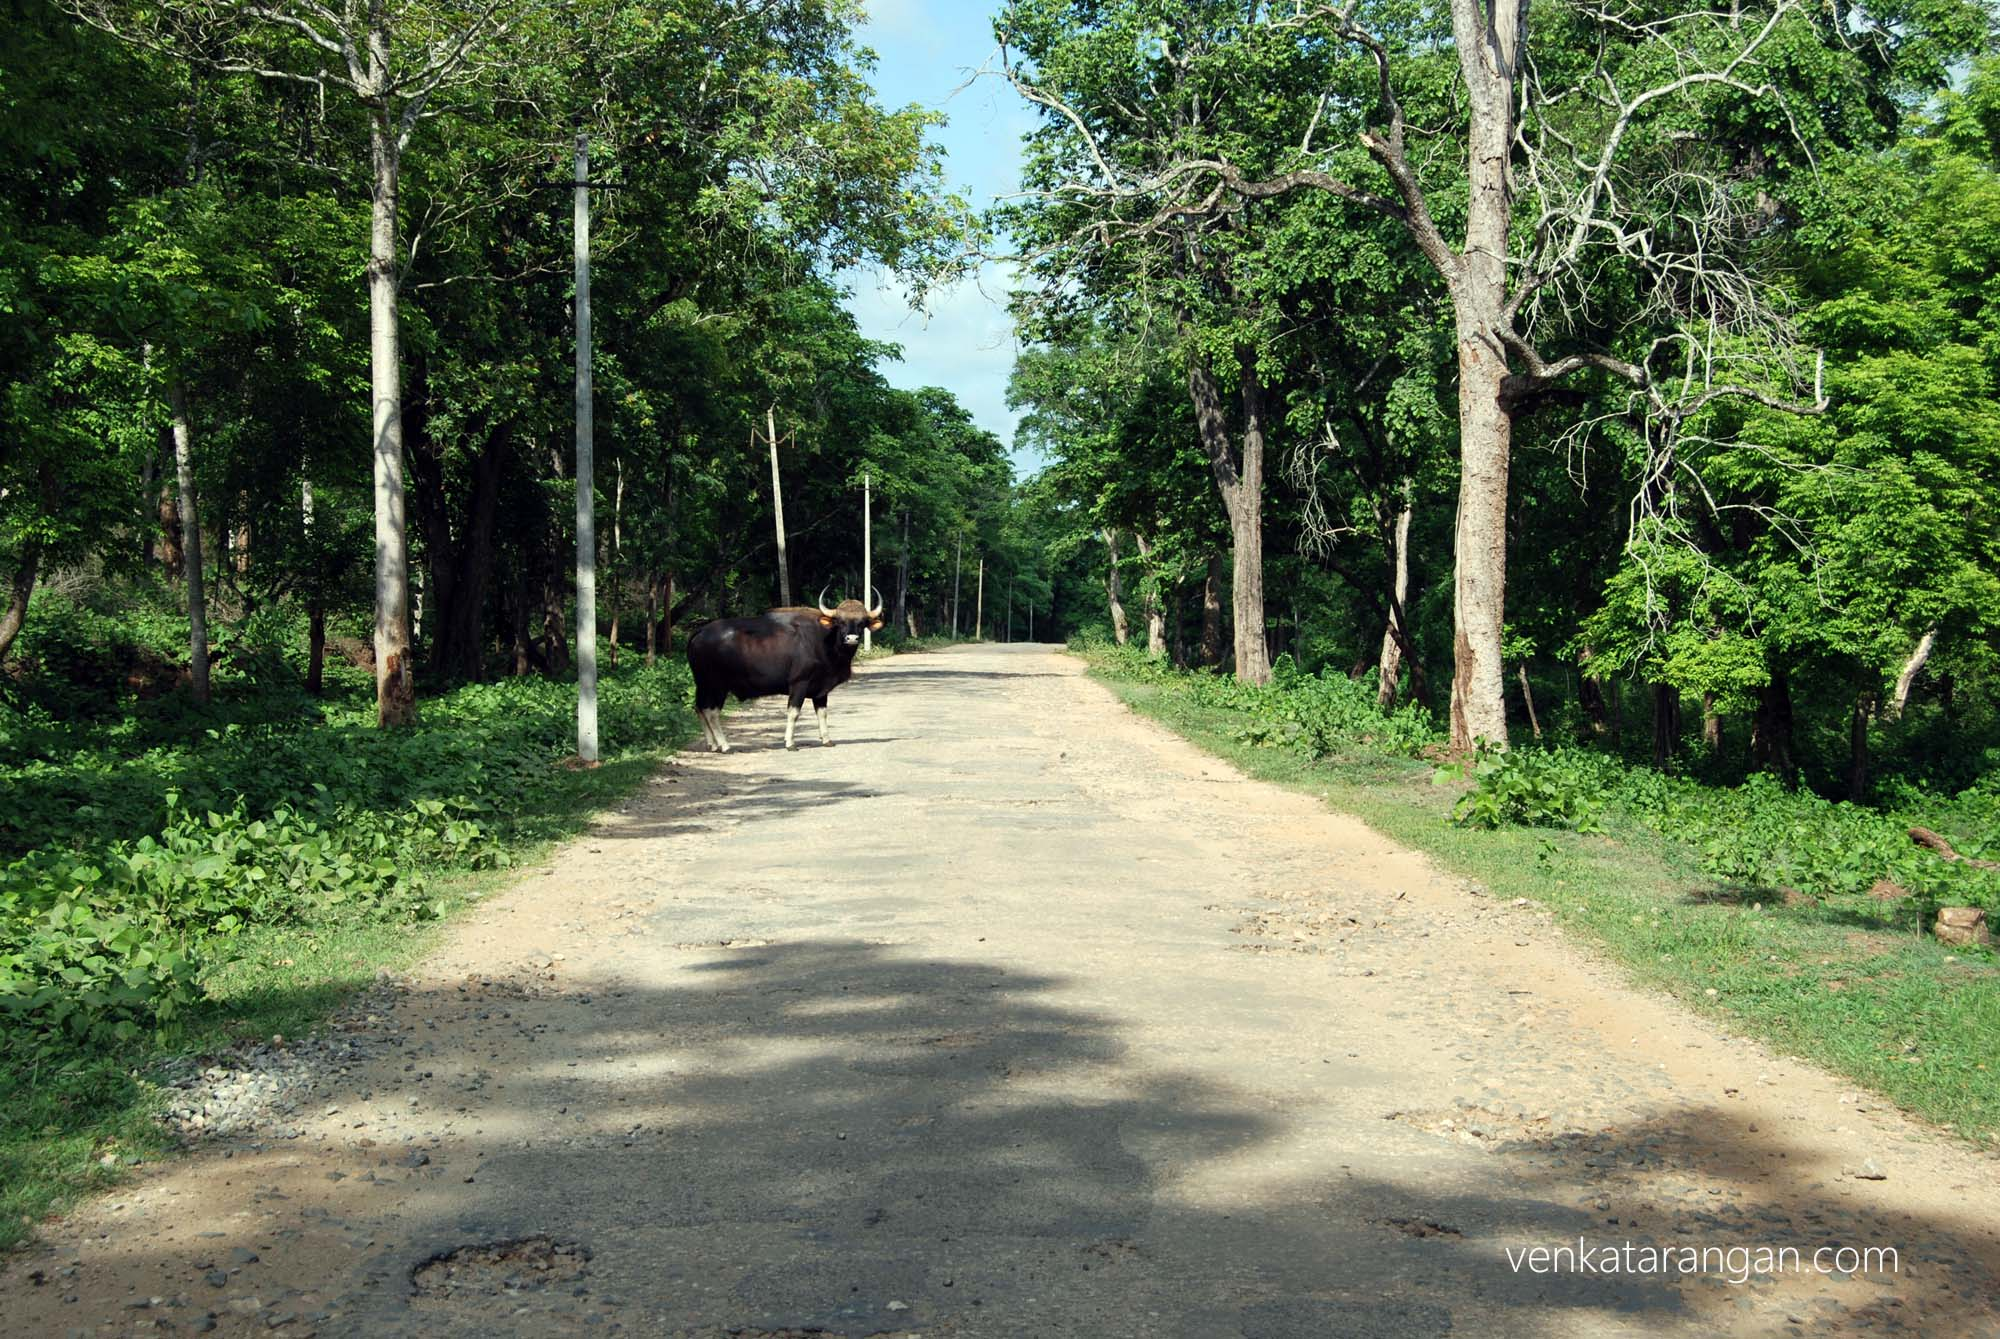 Wild Gaur crossed our path